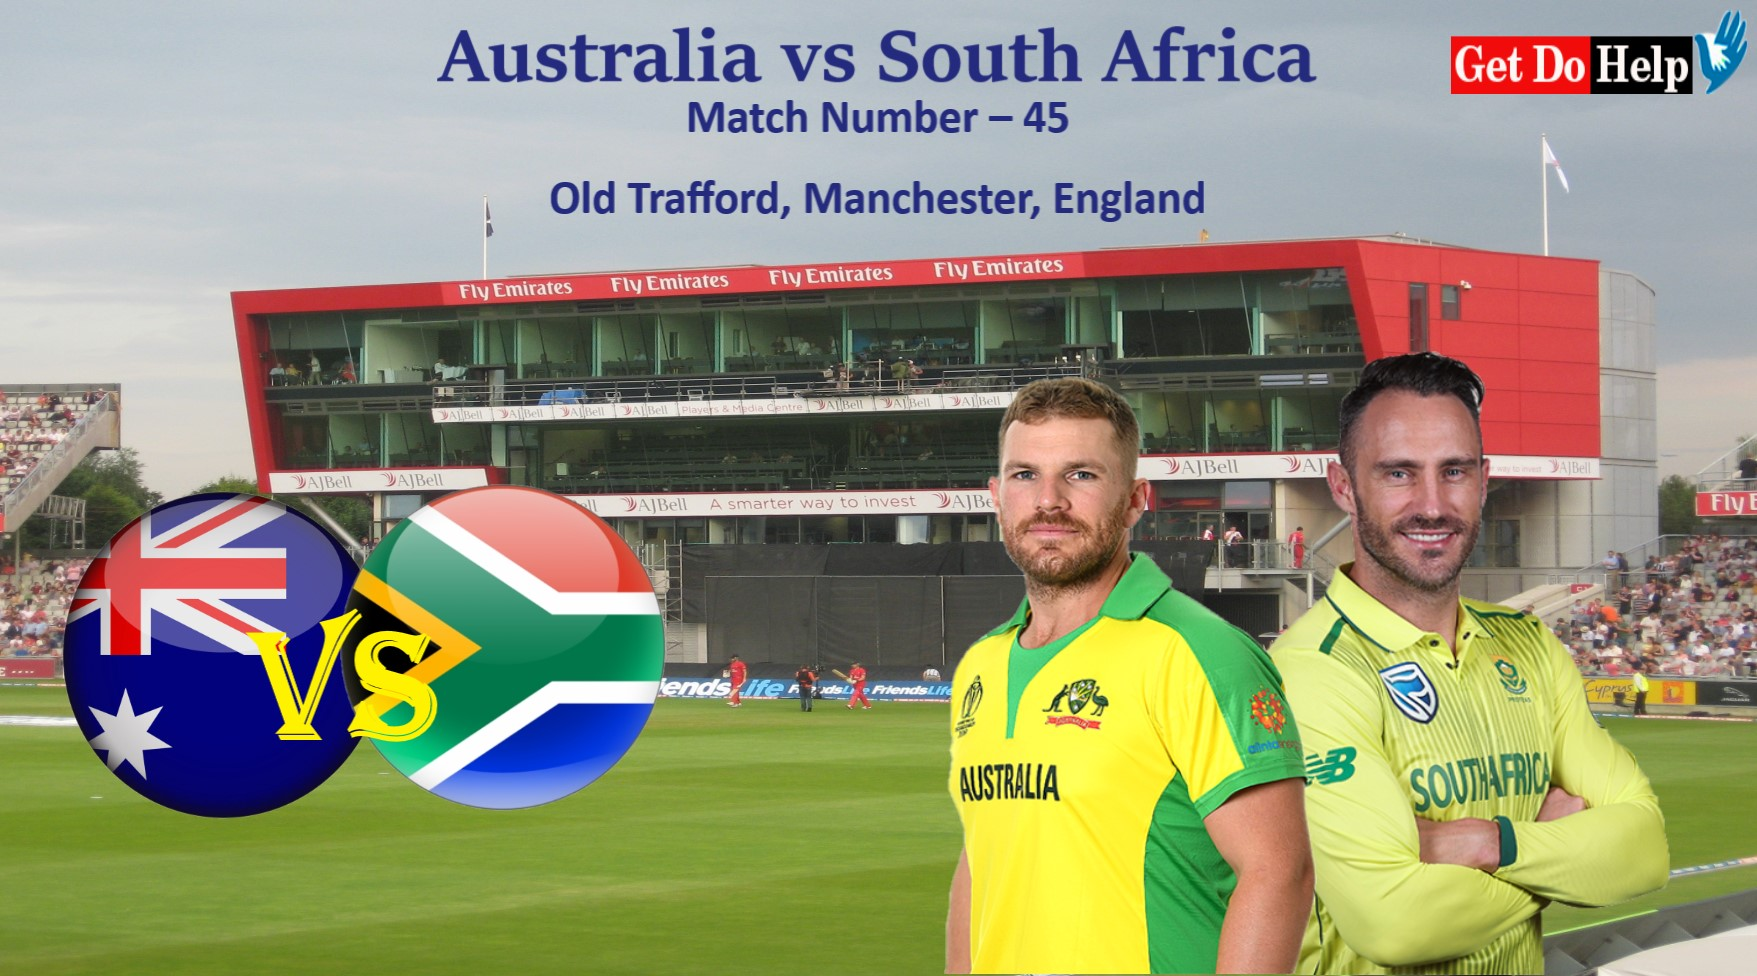 ICC World Cup 2019 - Match 45, Australia vs South Africa, Match Prediction and Tips